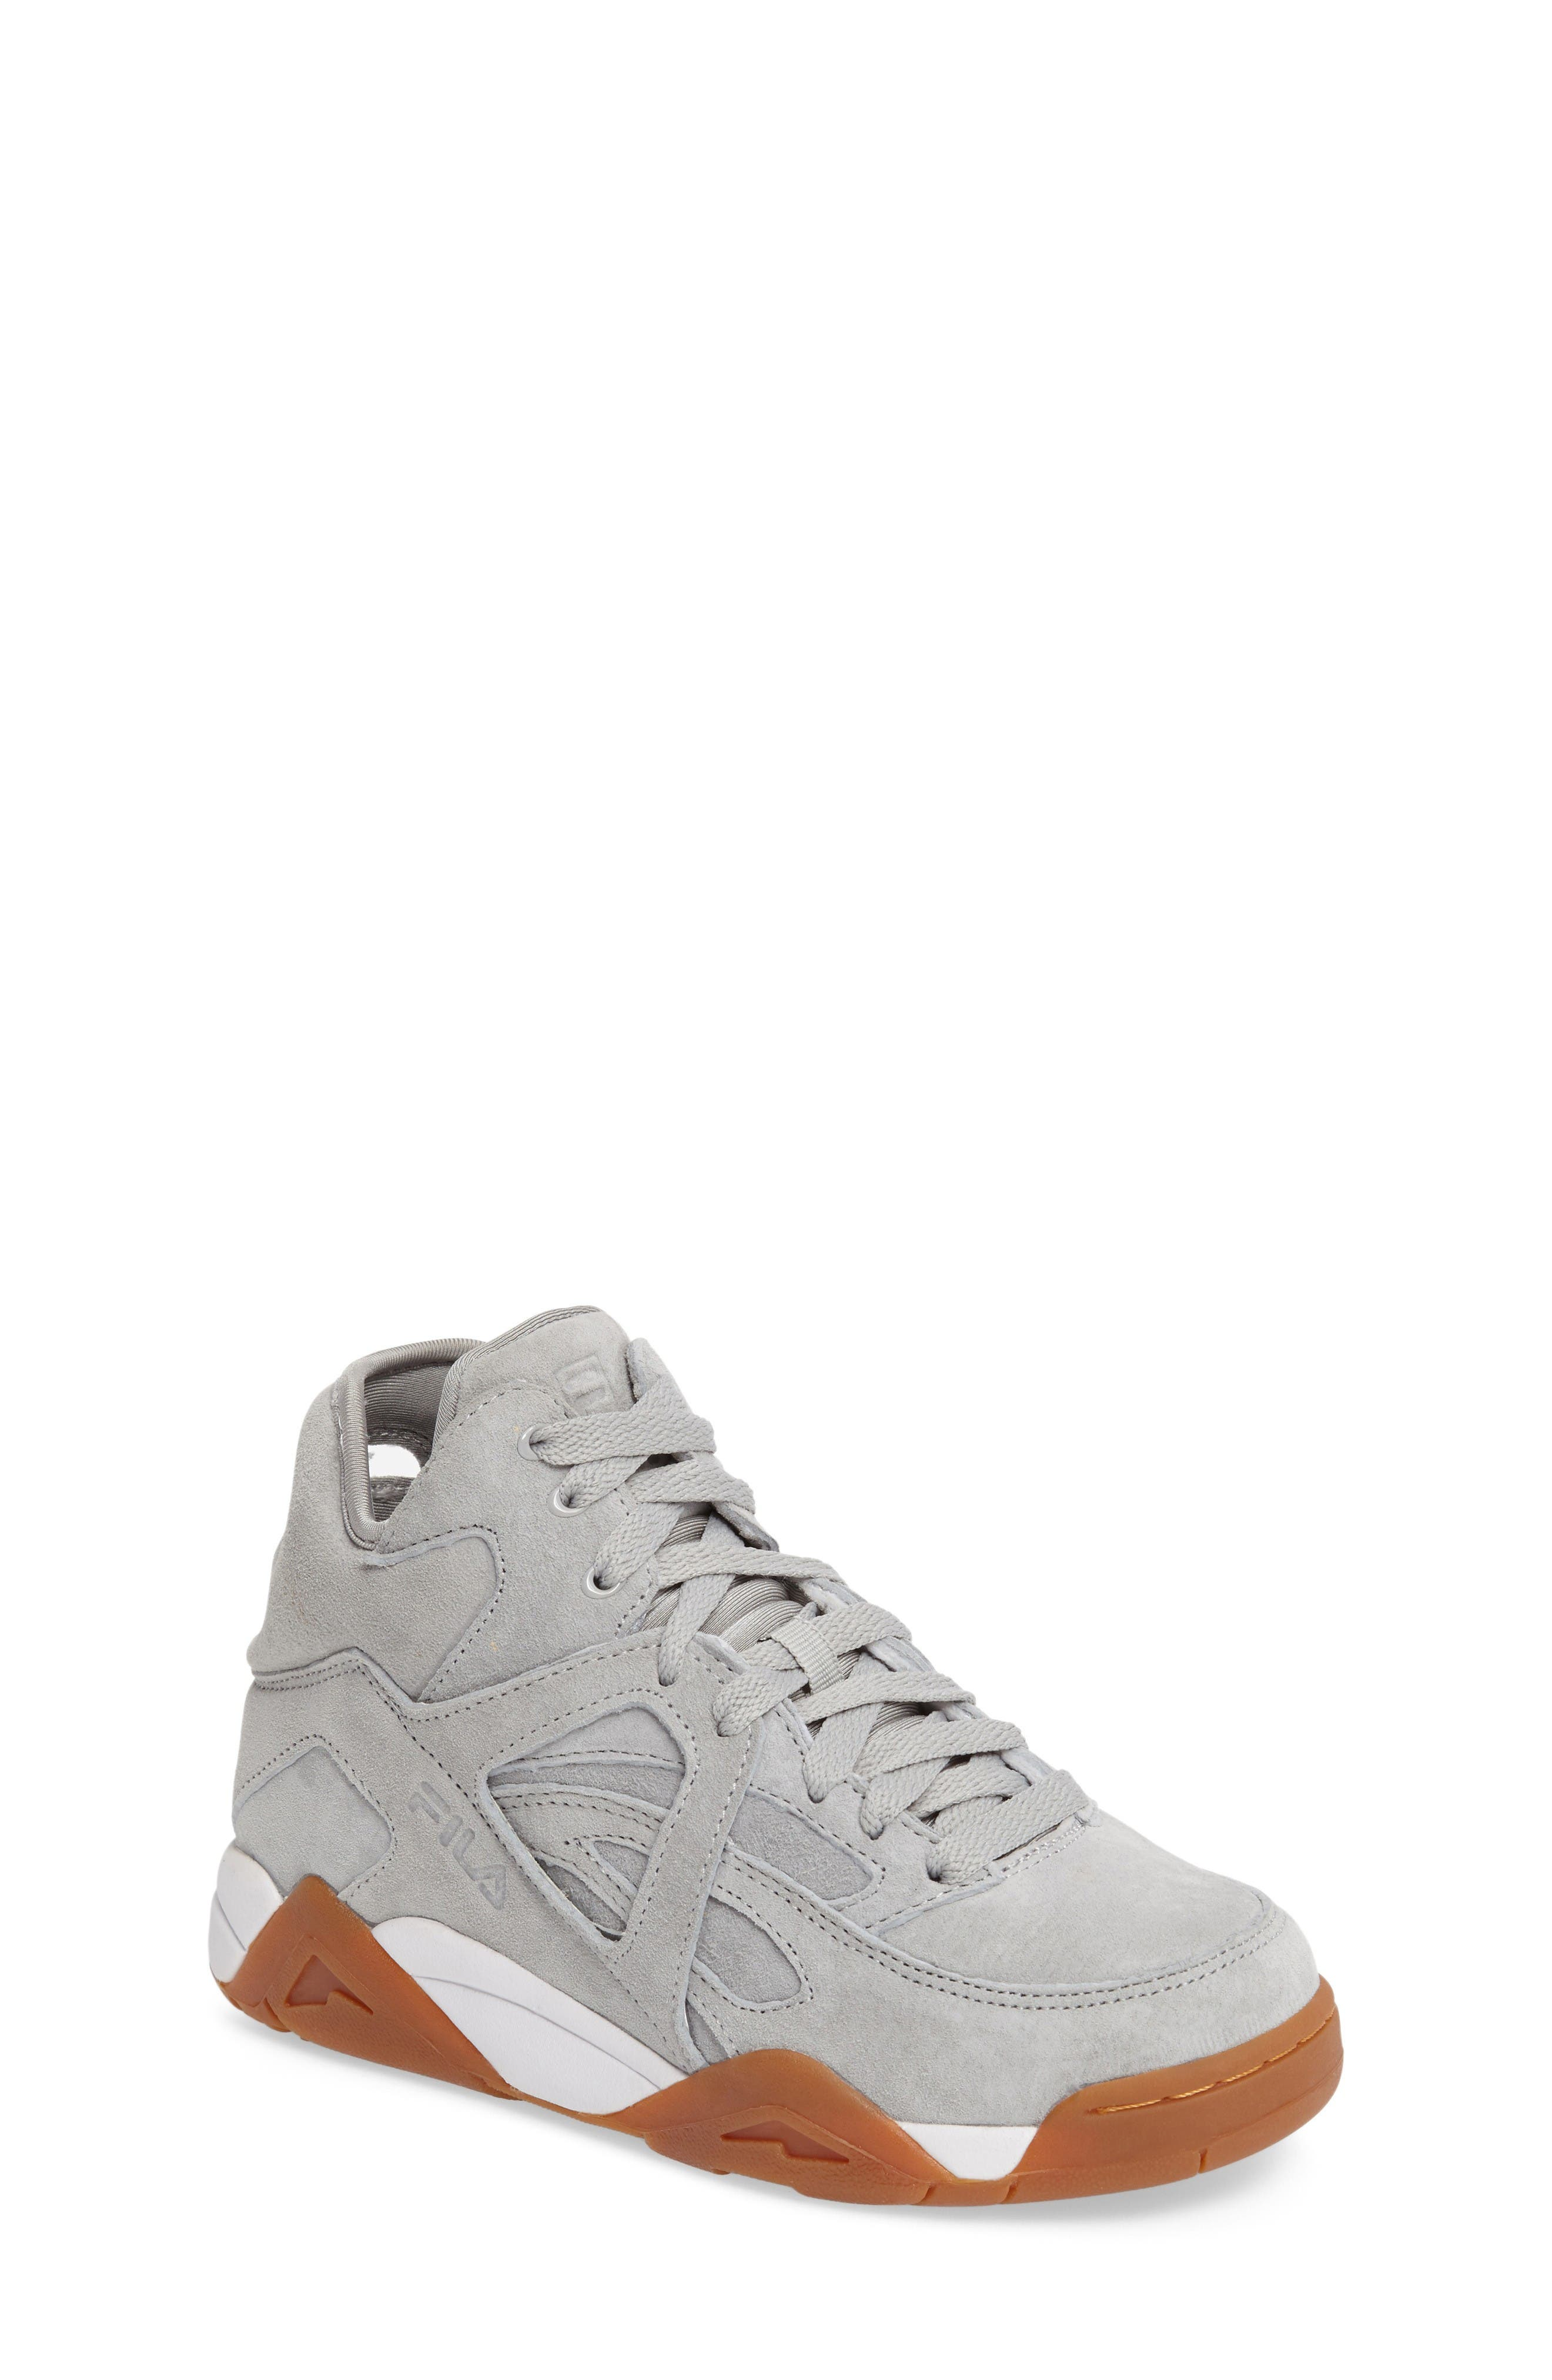 The Cage High Top Sneaker,                         Main,                         color, High Rise Nubuck Leather